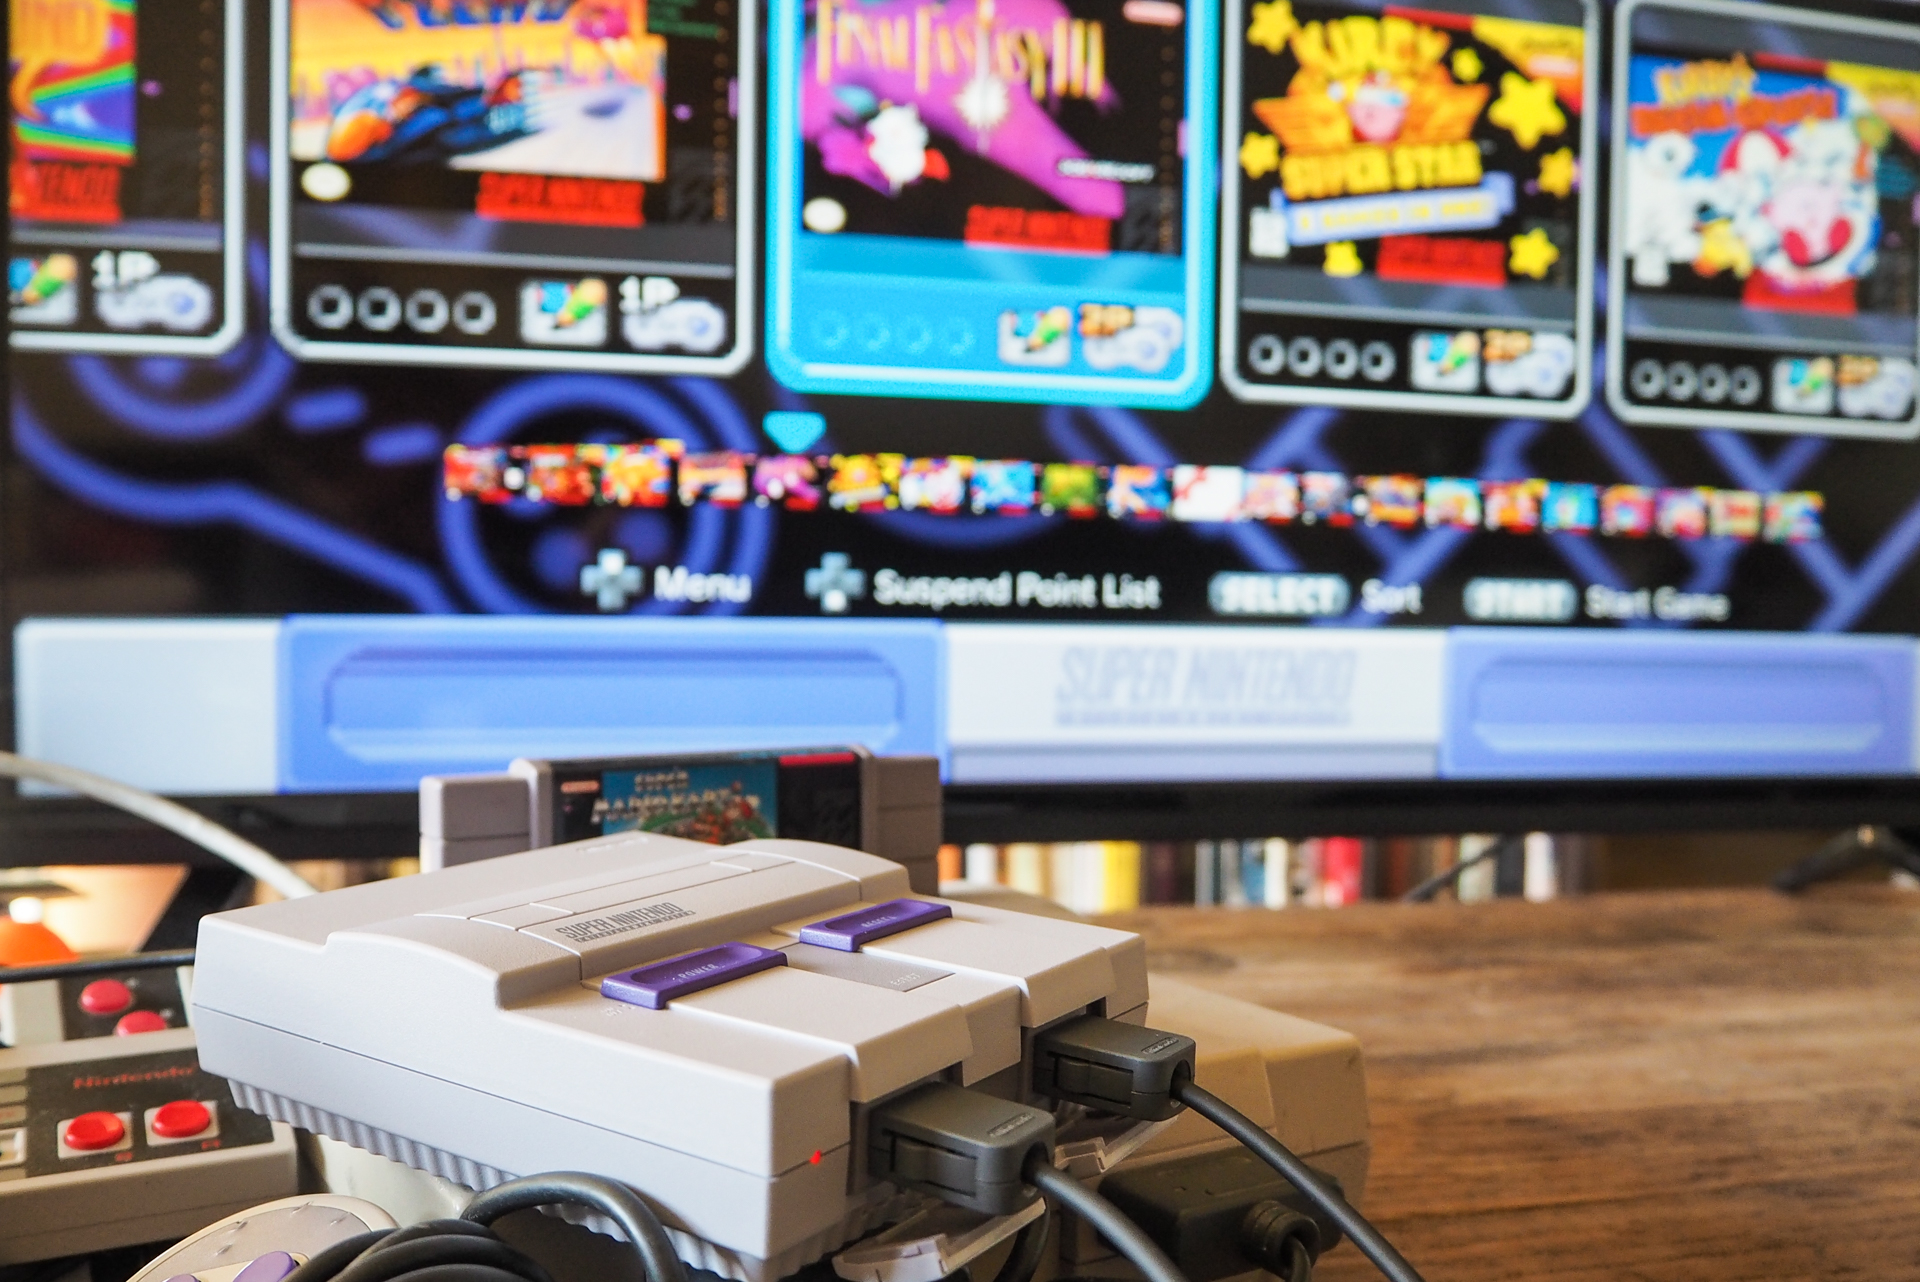 Review: The SNES Classic Edition and all 21 games on it